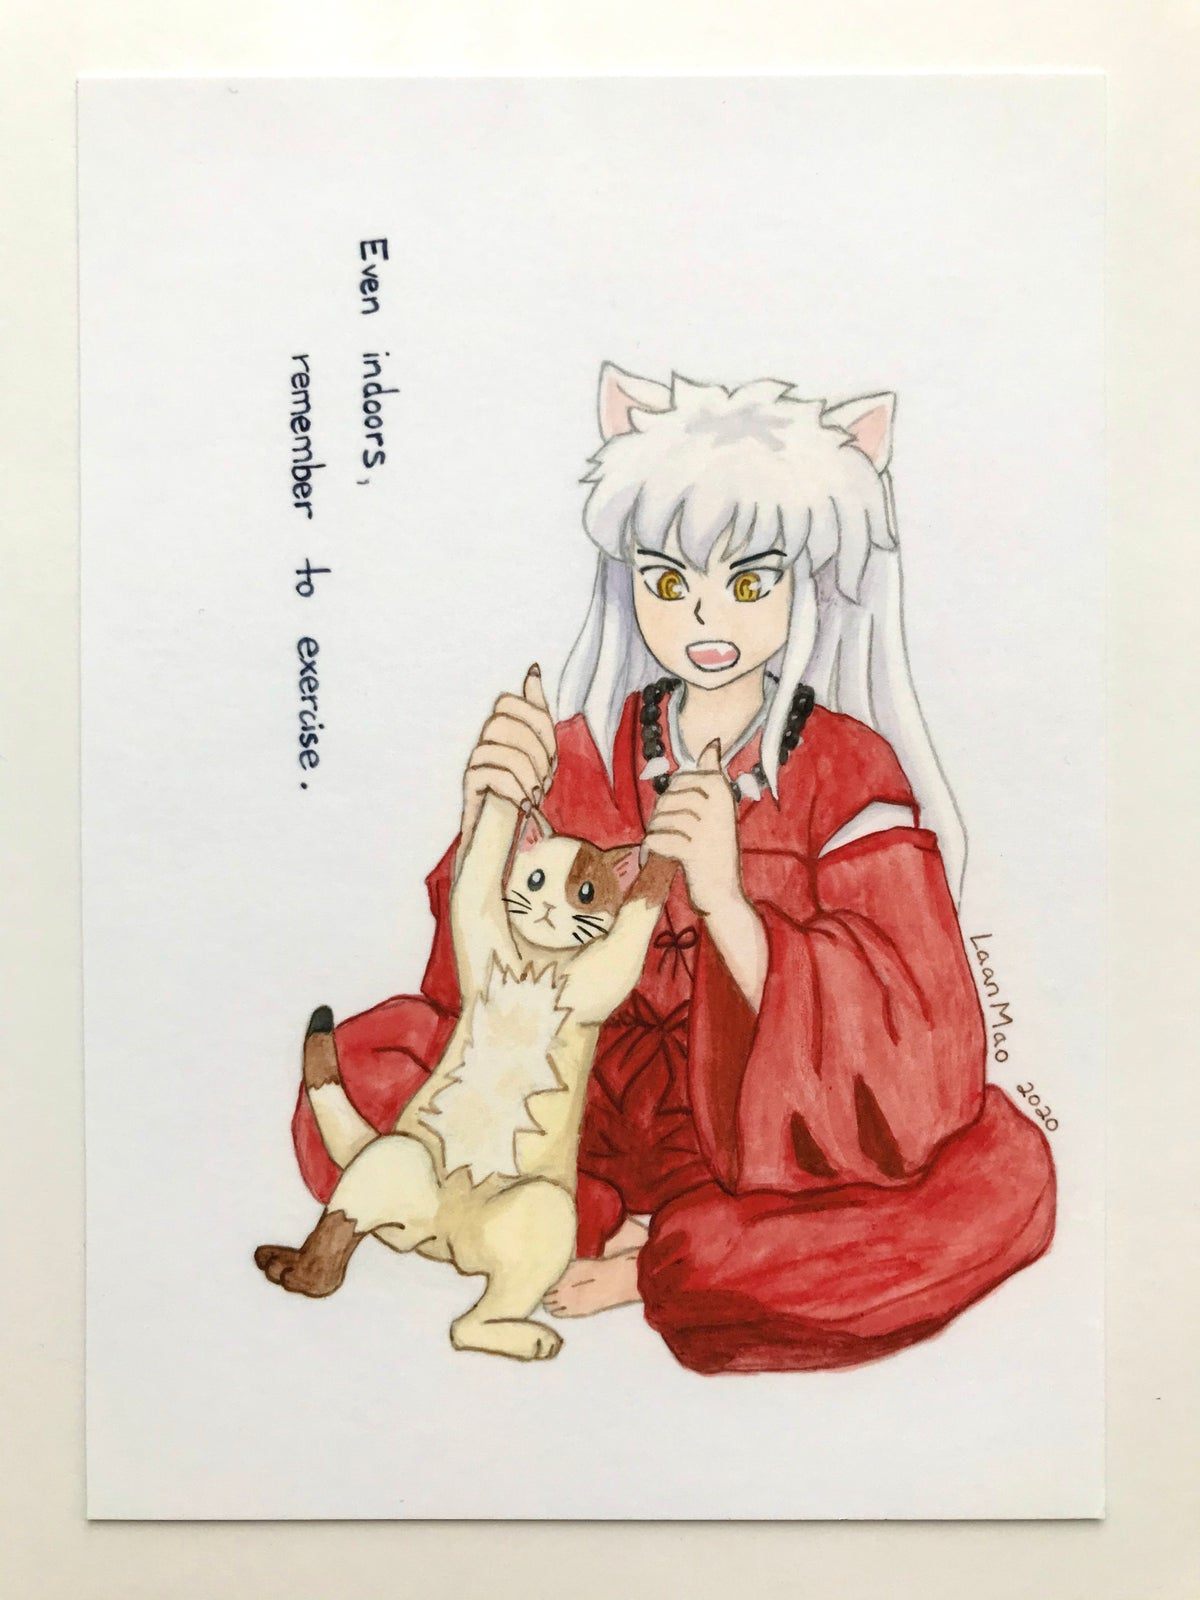 [Inuyasha] Exercise Day Print